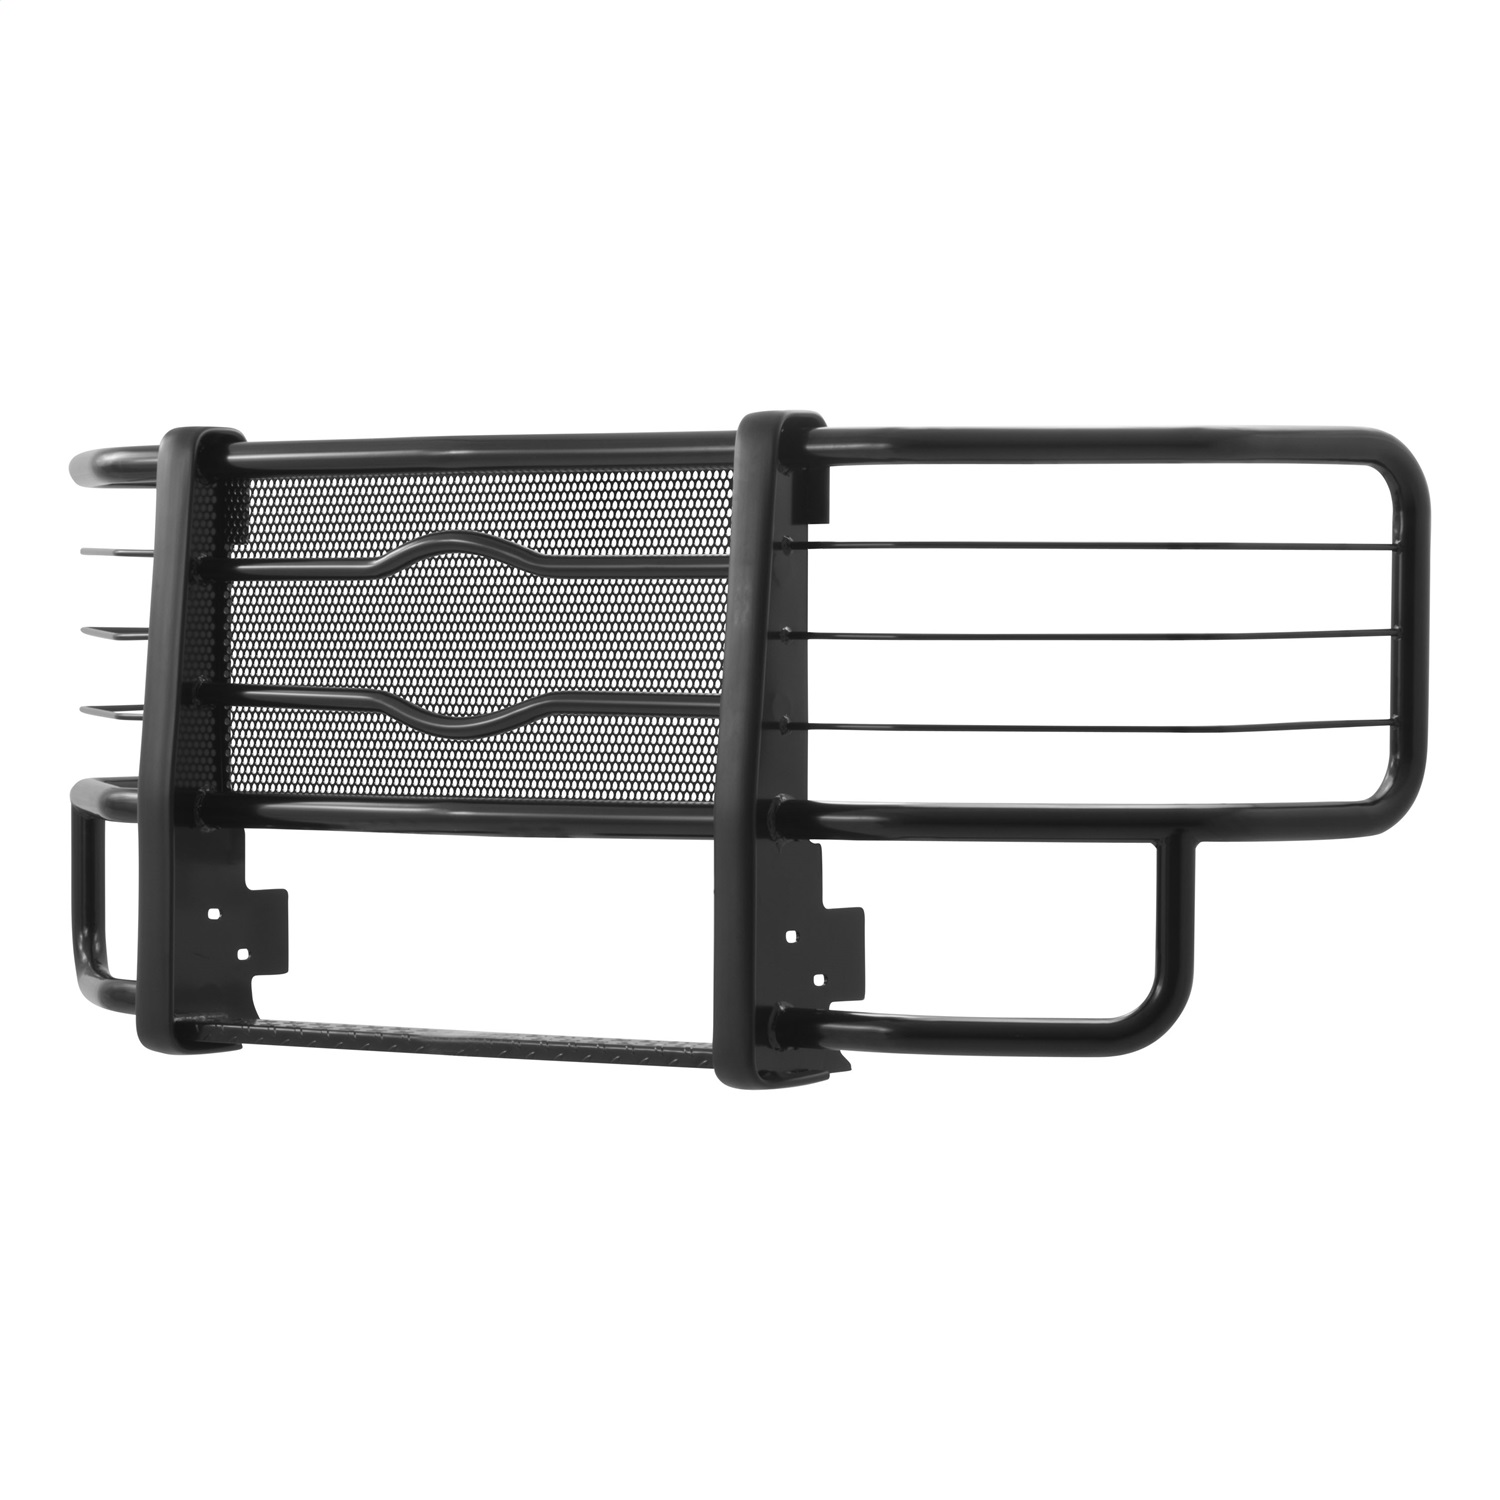 Prowler Max Grille Guard Brackets, Component For PN[321123-321122]